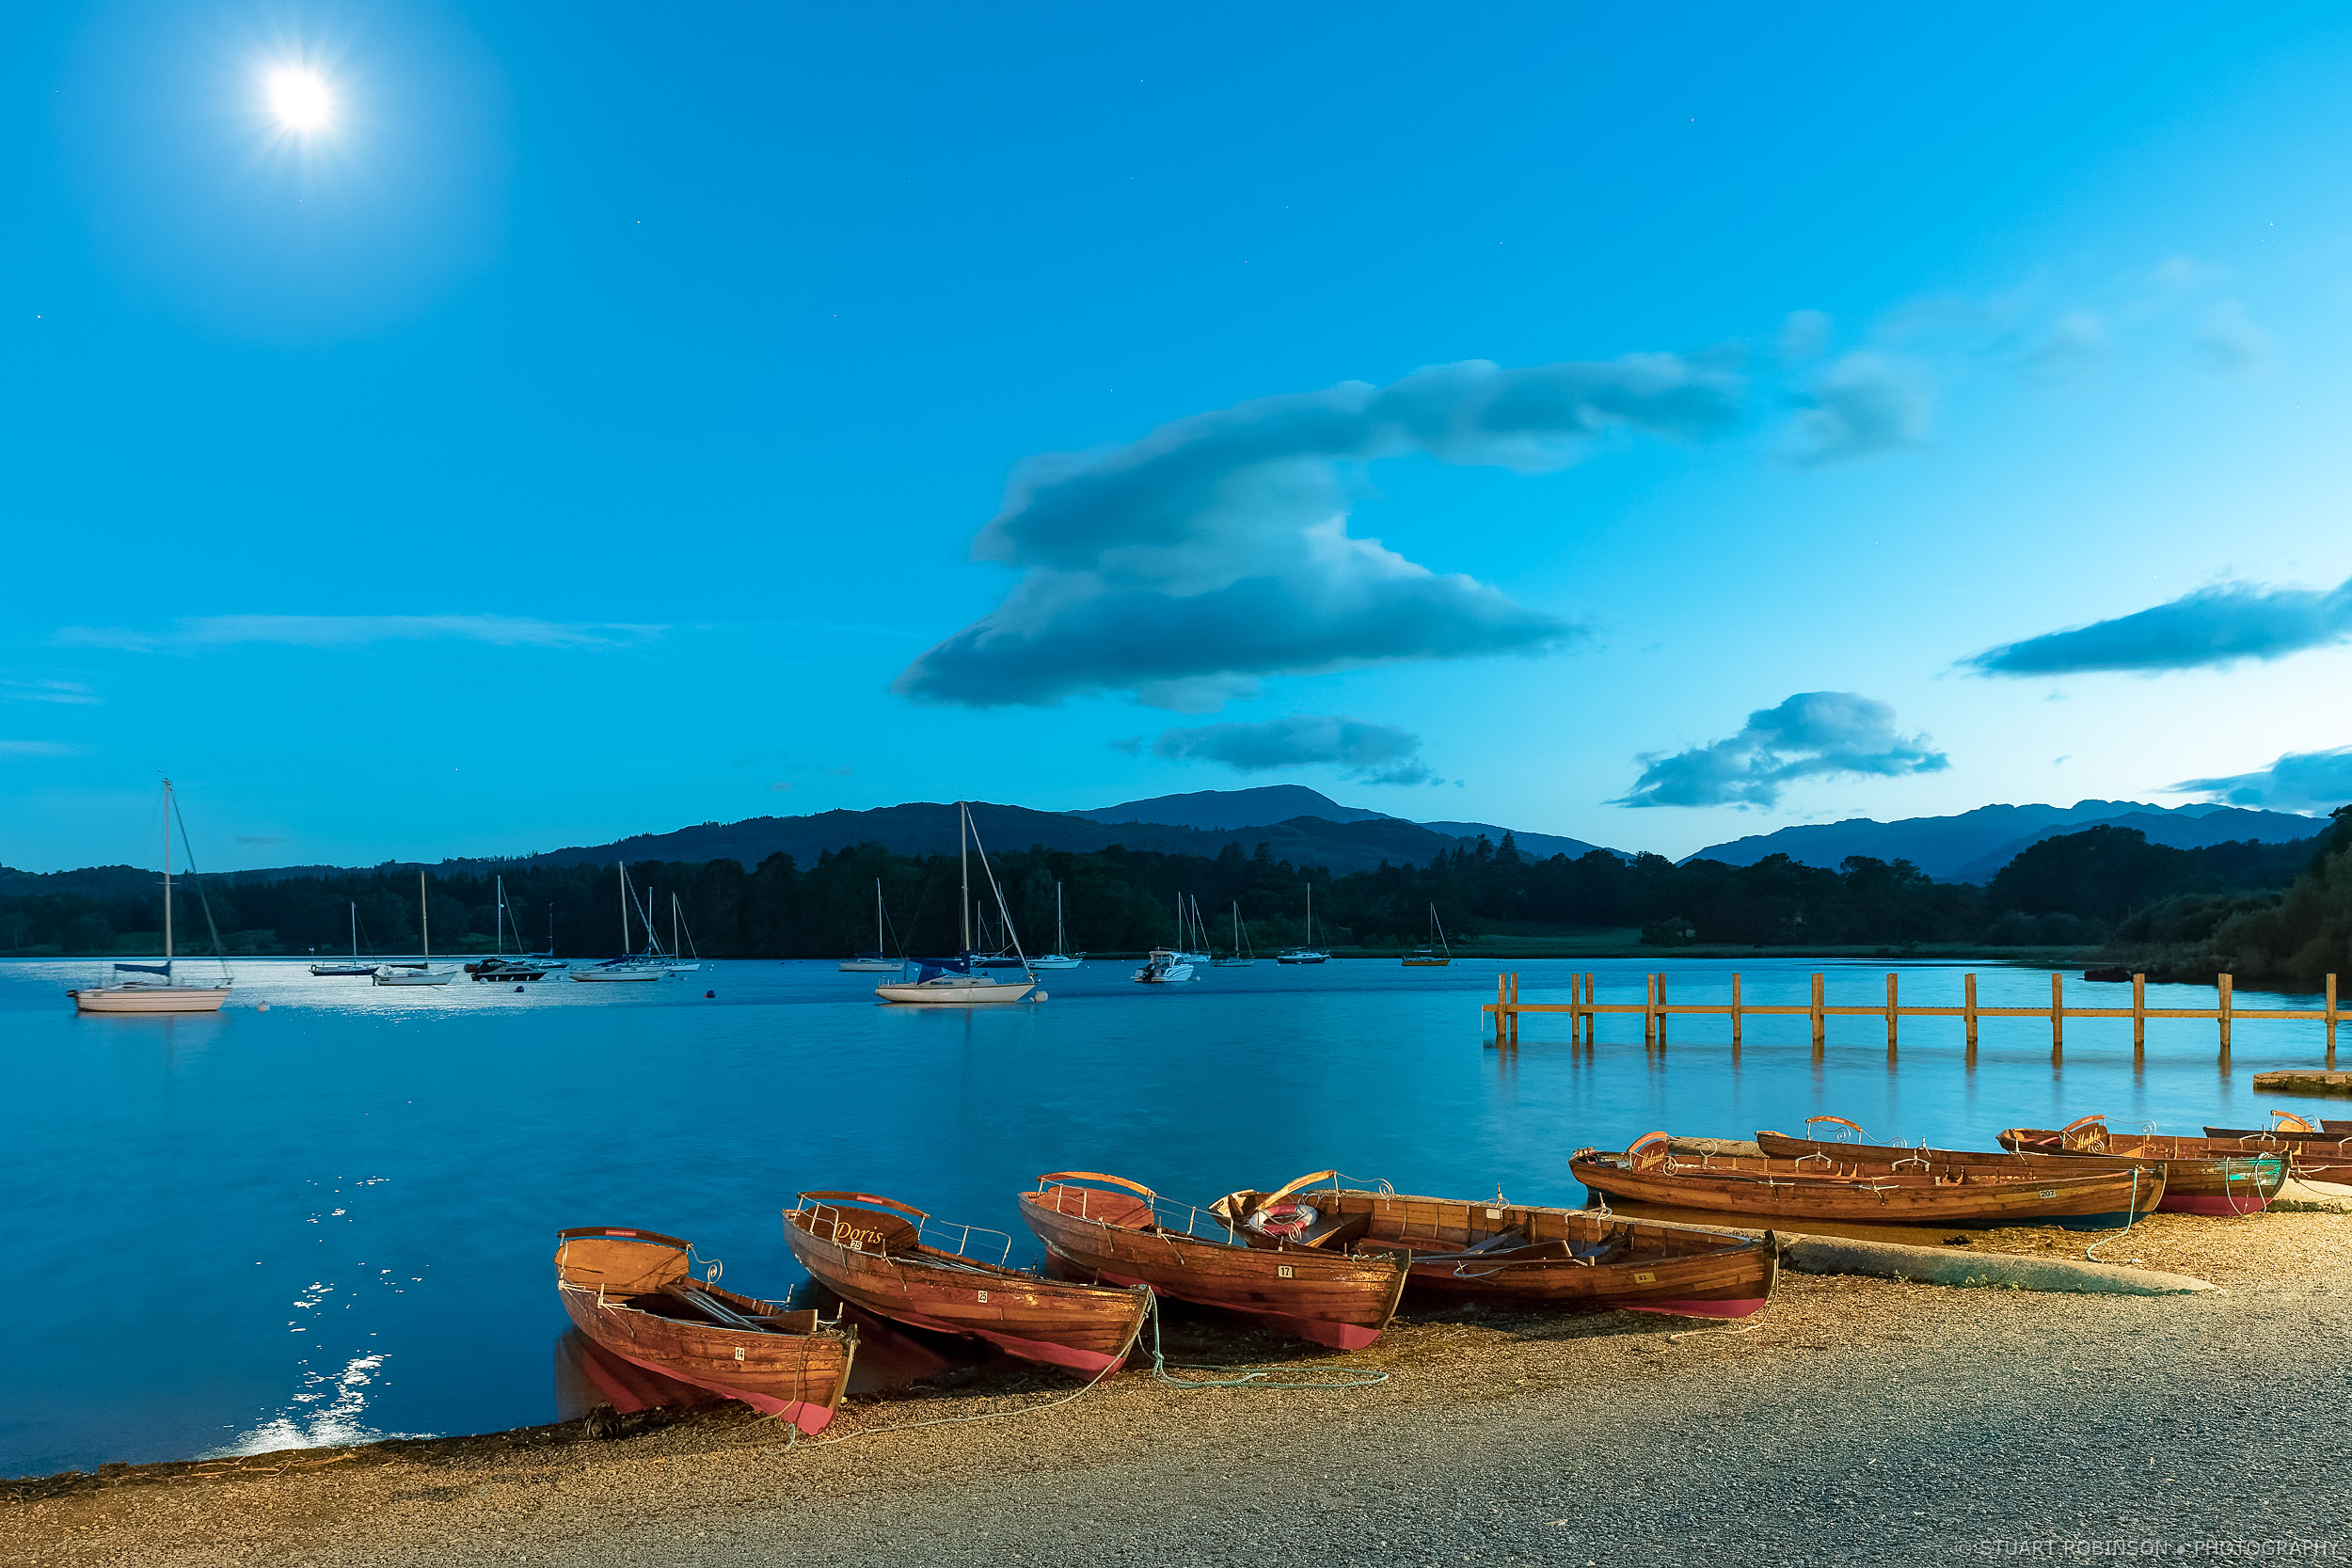 Waterhead, Windermere, Blue Hour  - Canon EOS 5Ds, EF 24-70mm f2.8L II, 28mm, 3.2 sec at f/7.1, ISO 3200